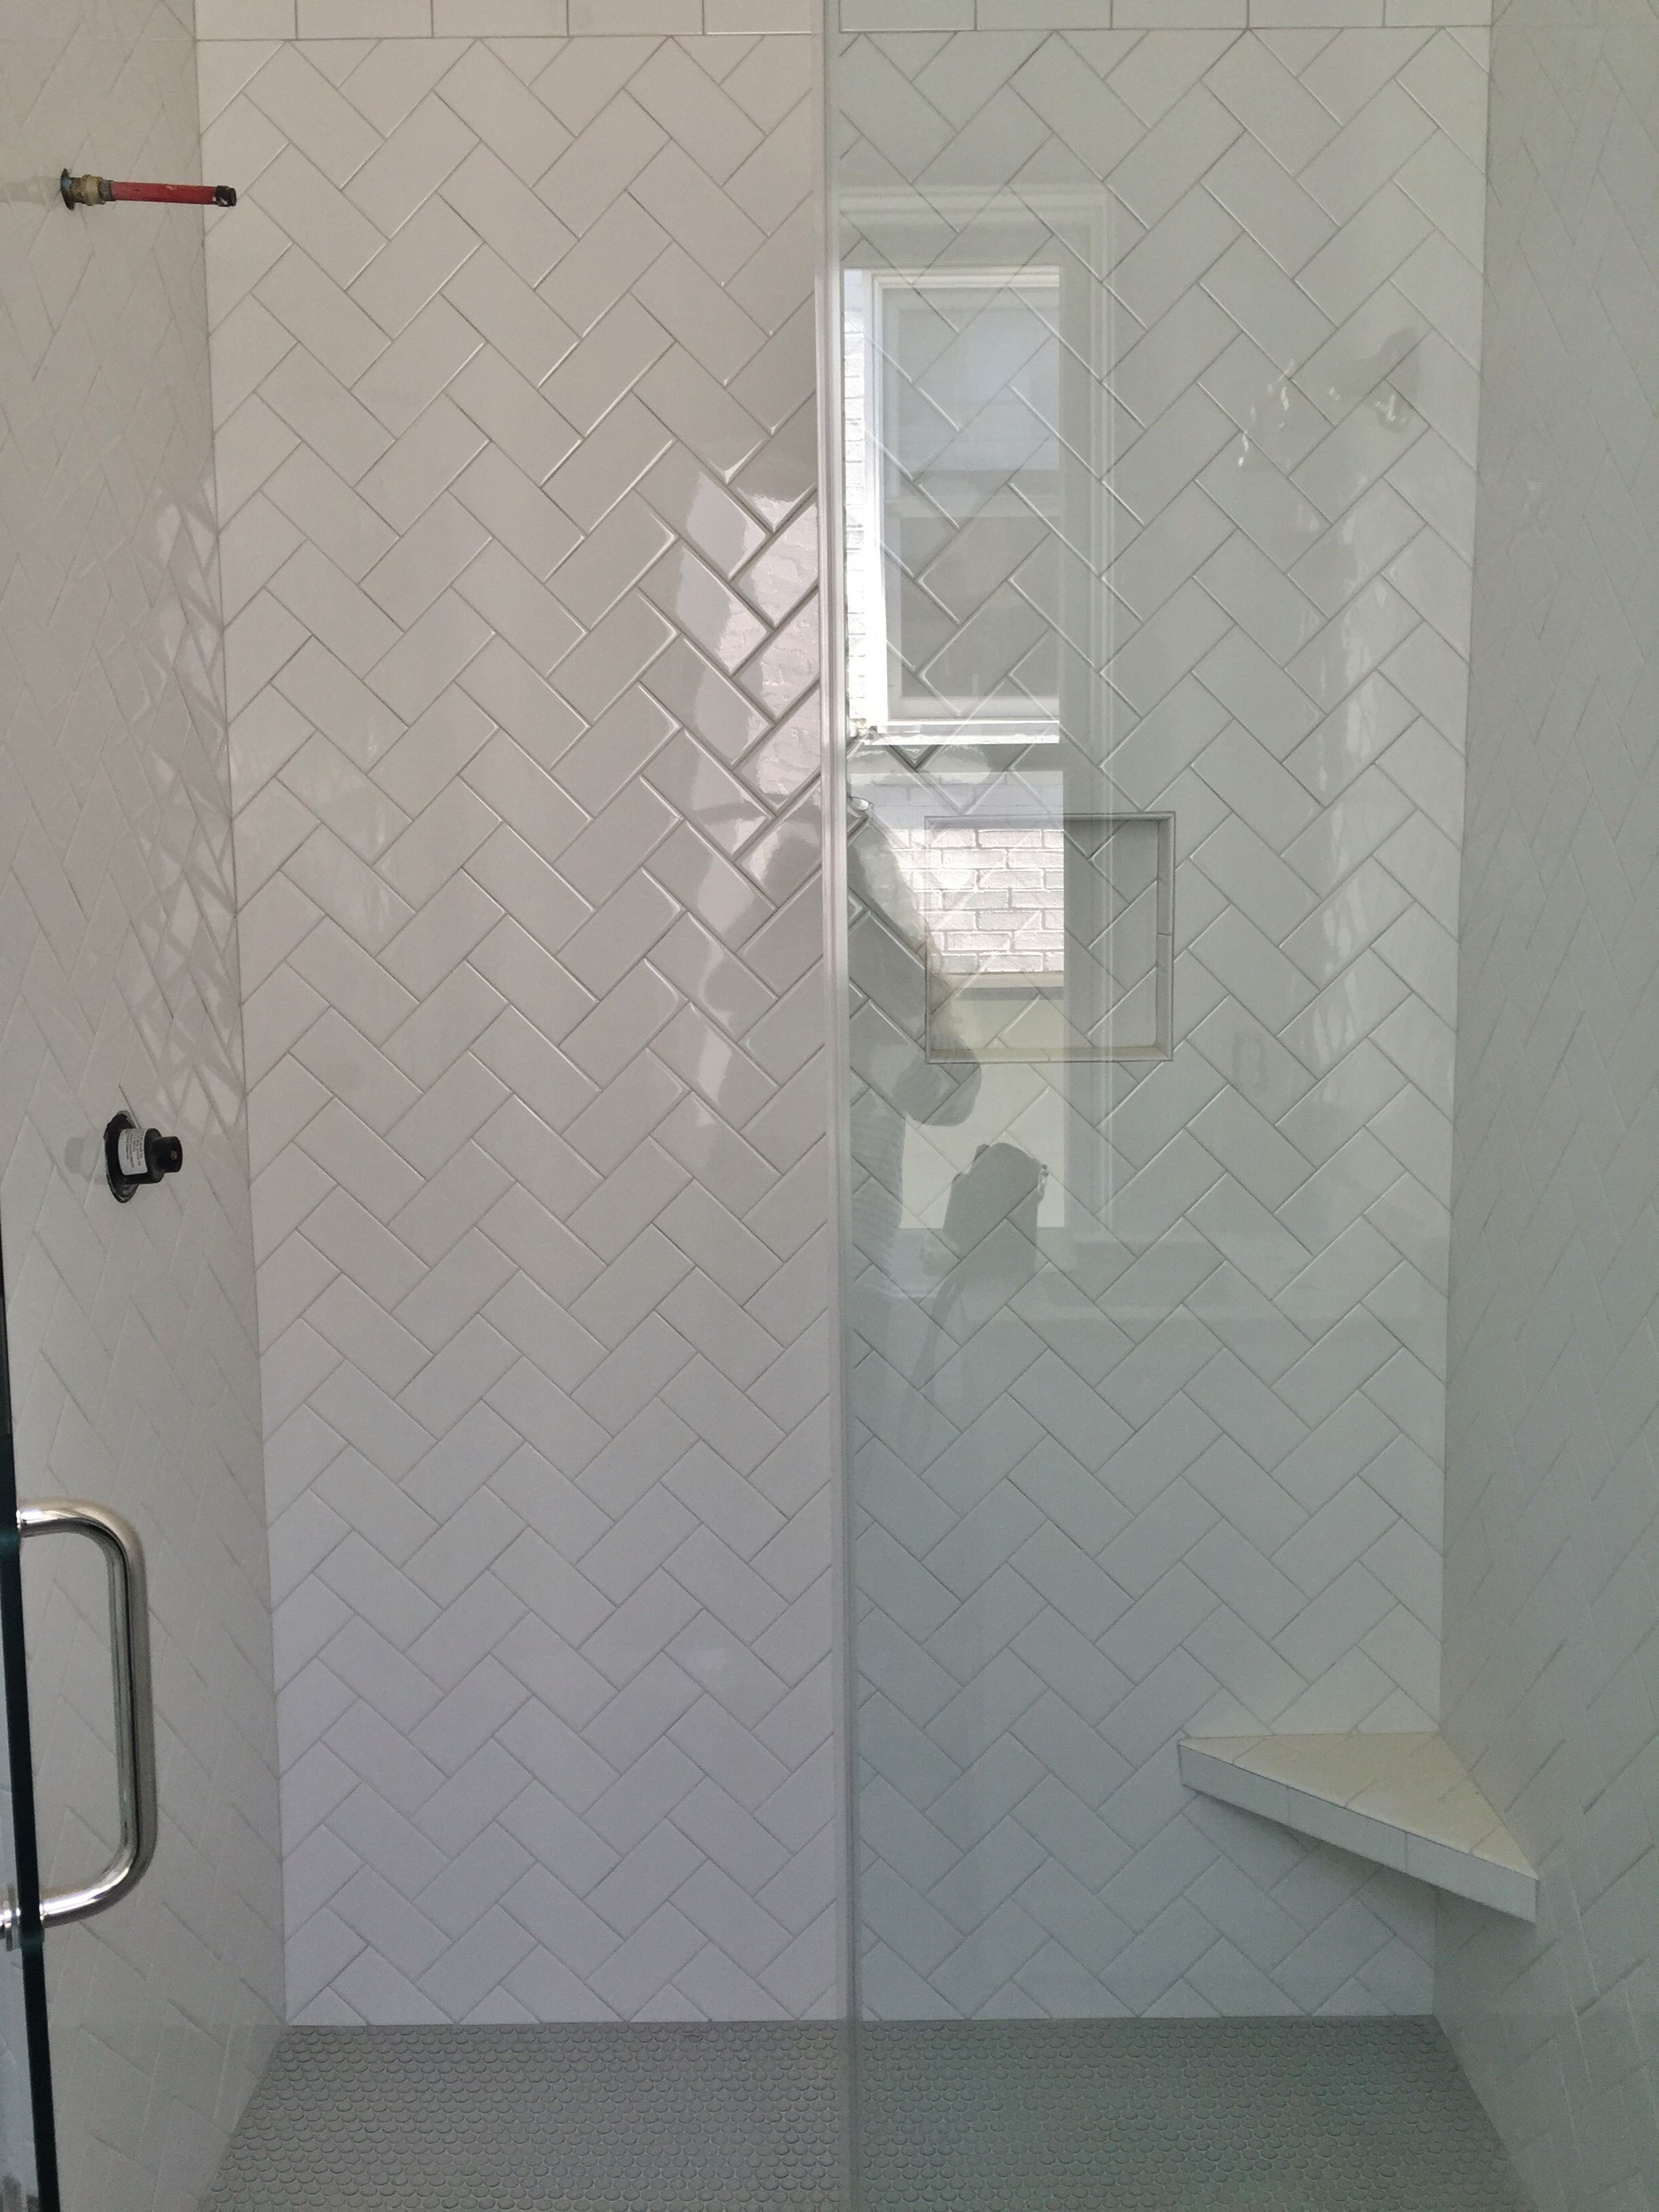 3x6 White Subway Tile Set In Herringbone Pattern Gray Penny